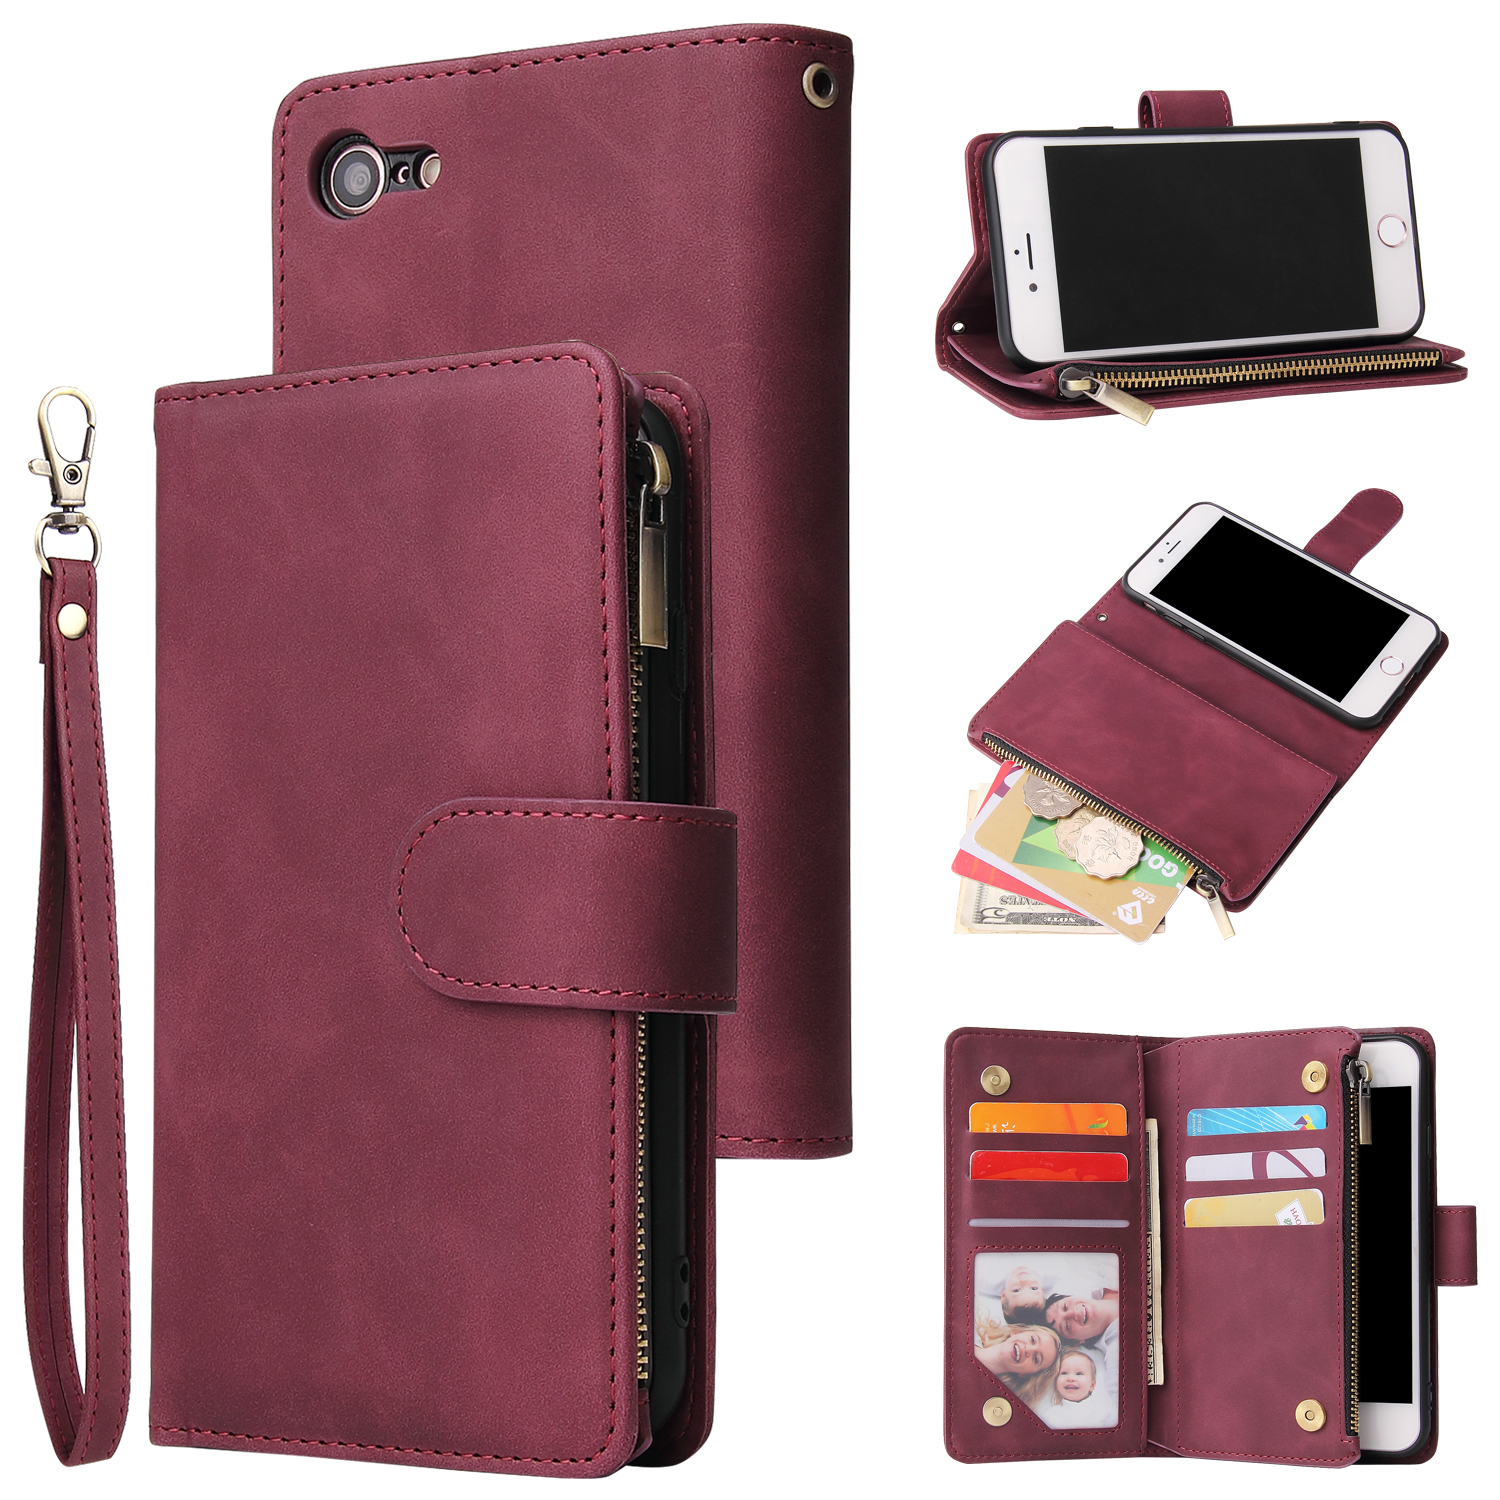 For iPhone 6 / 6S iPhone 6 plus / 6S plus iPhone 7 / 8 iPhone 7 plus / 8 plus Smart Phone Cover Coin Pocket with Cards Bracket Zipper Phone PU Leather Case Phone Cover  iPhone 7 / 8